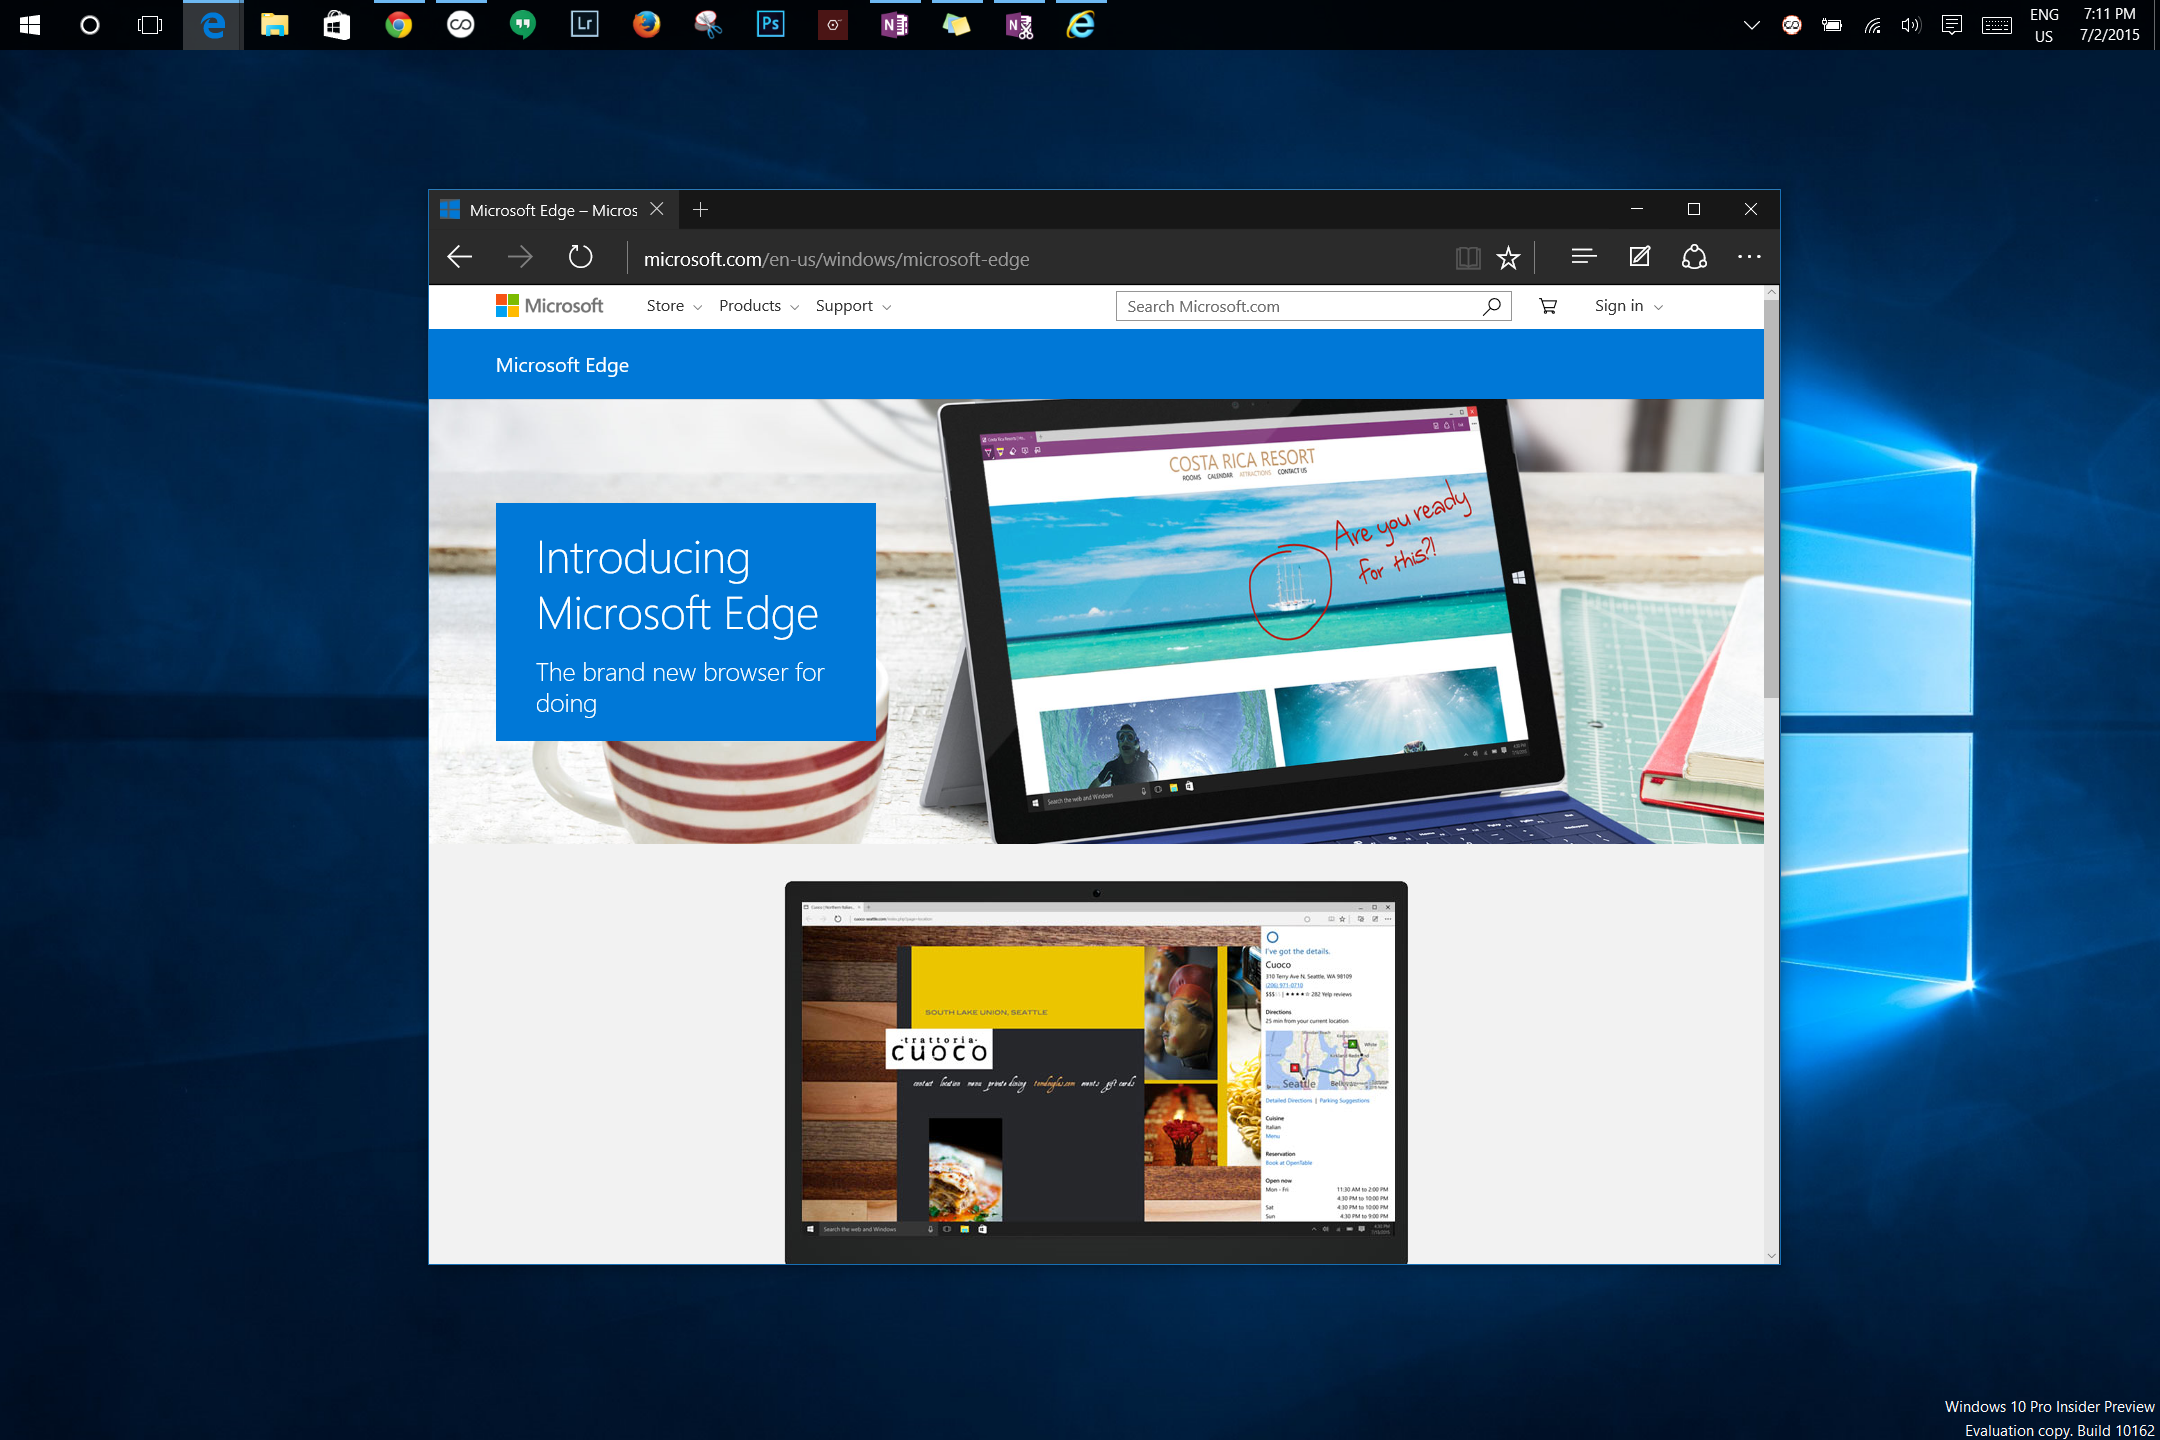 Microsoft releases near-final Windows 10 build, claims Edge beats Chrome in Google benchmarks